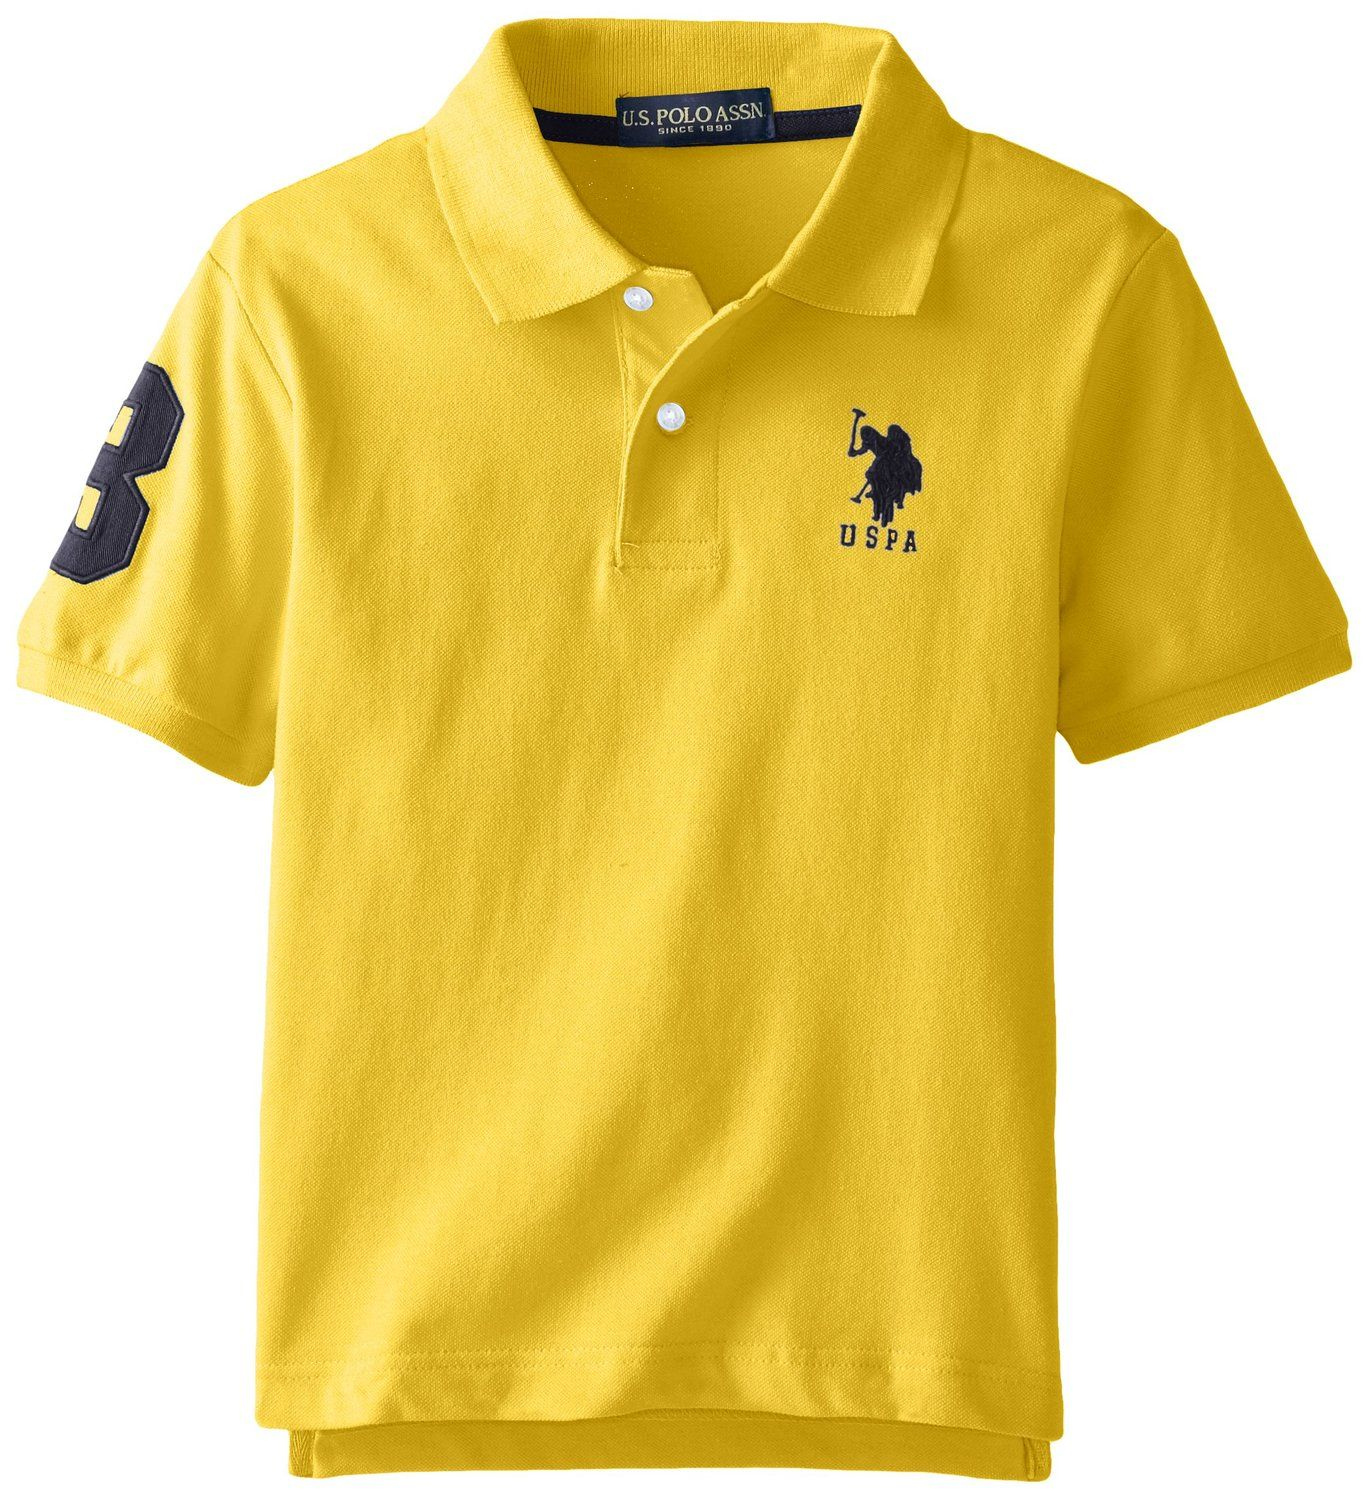 U.S. Polo Assn. polo tričko Sleeve Solid Pique Polo